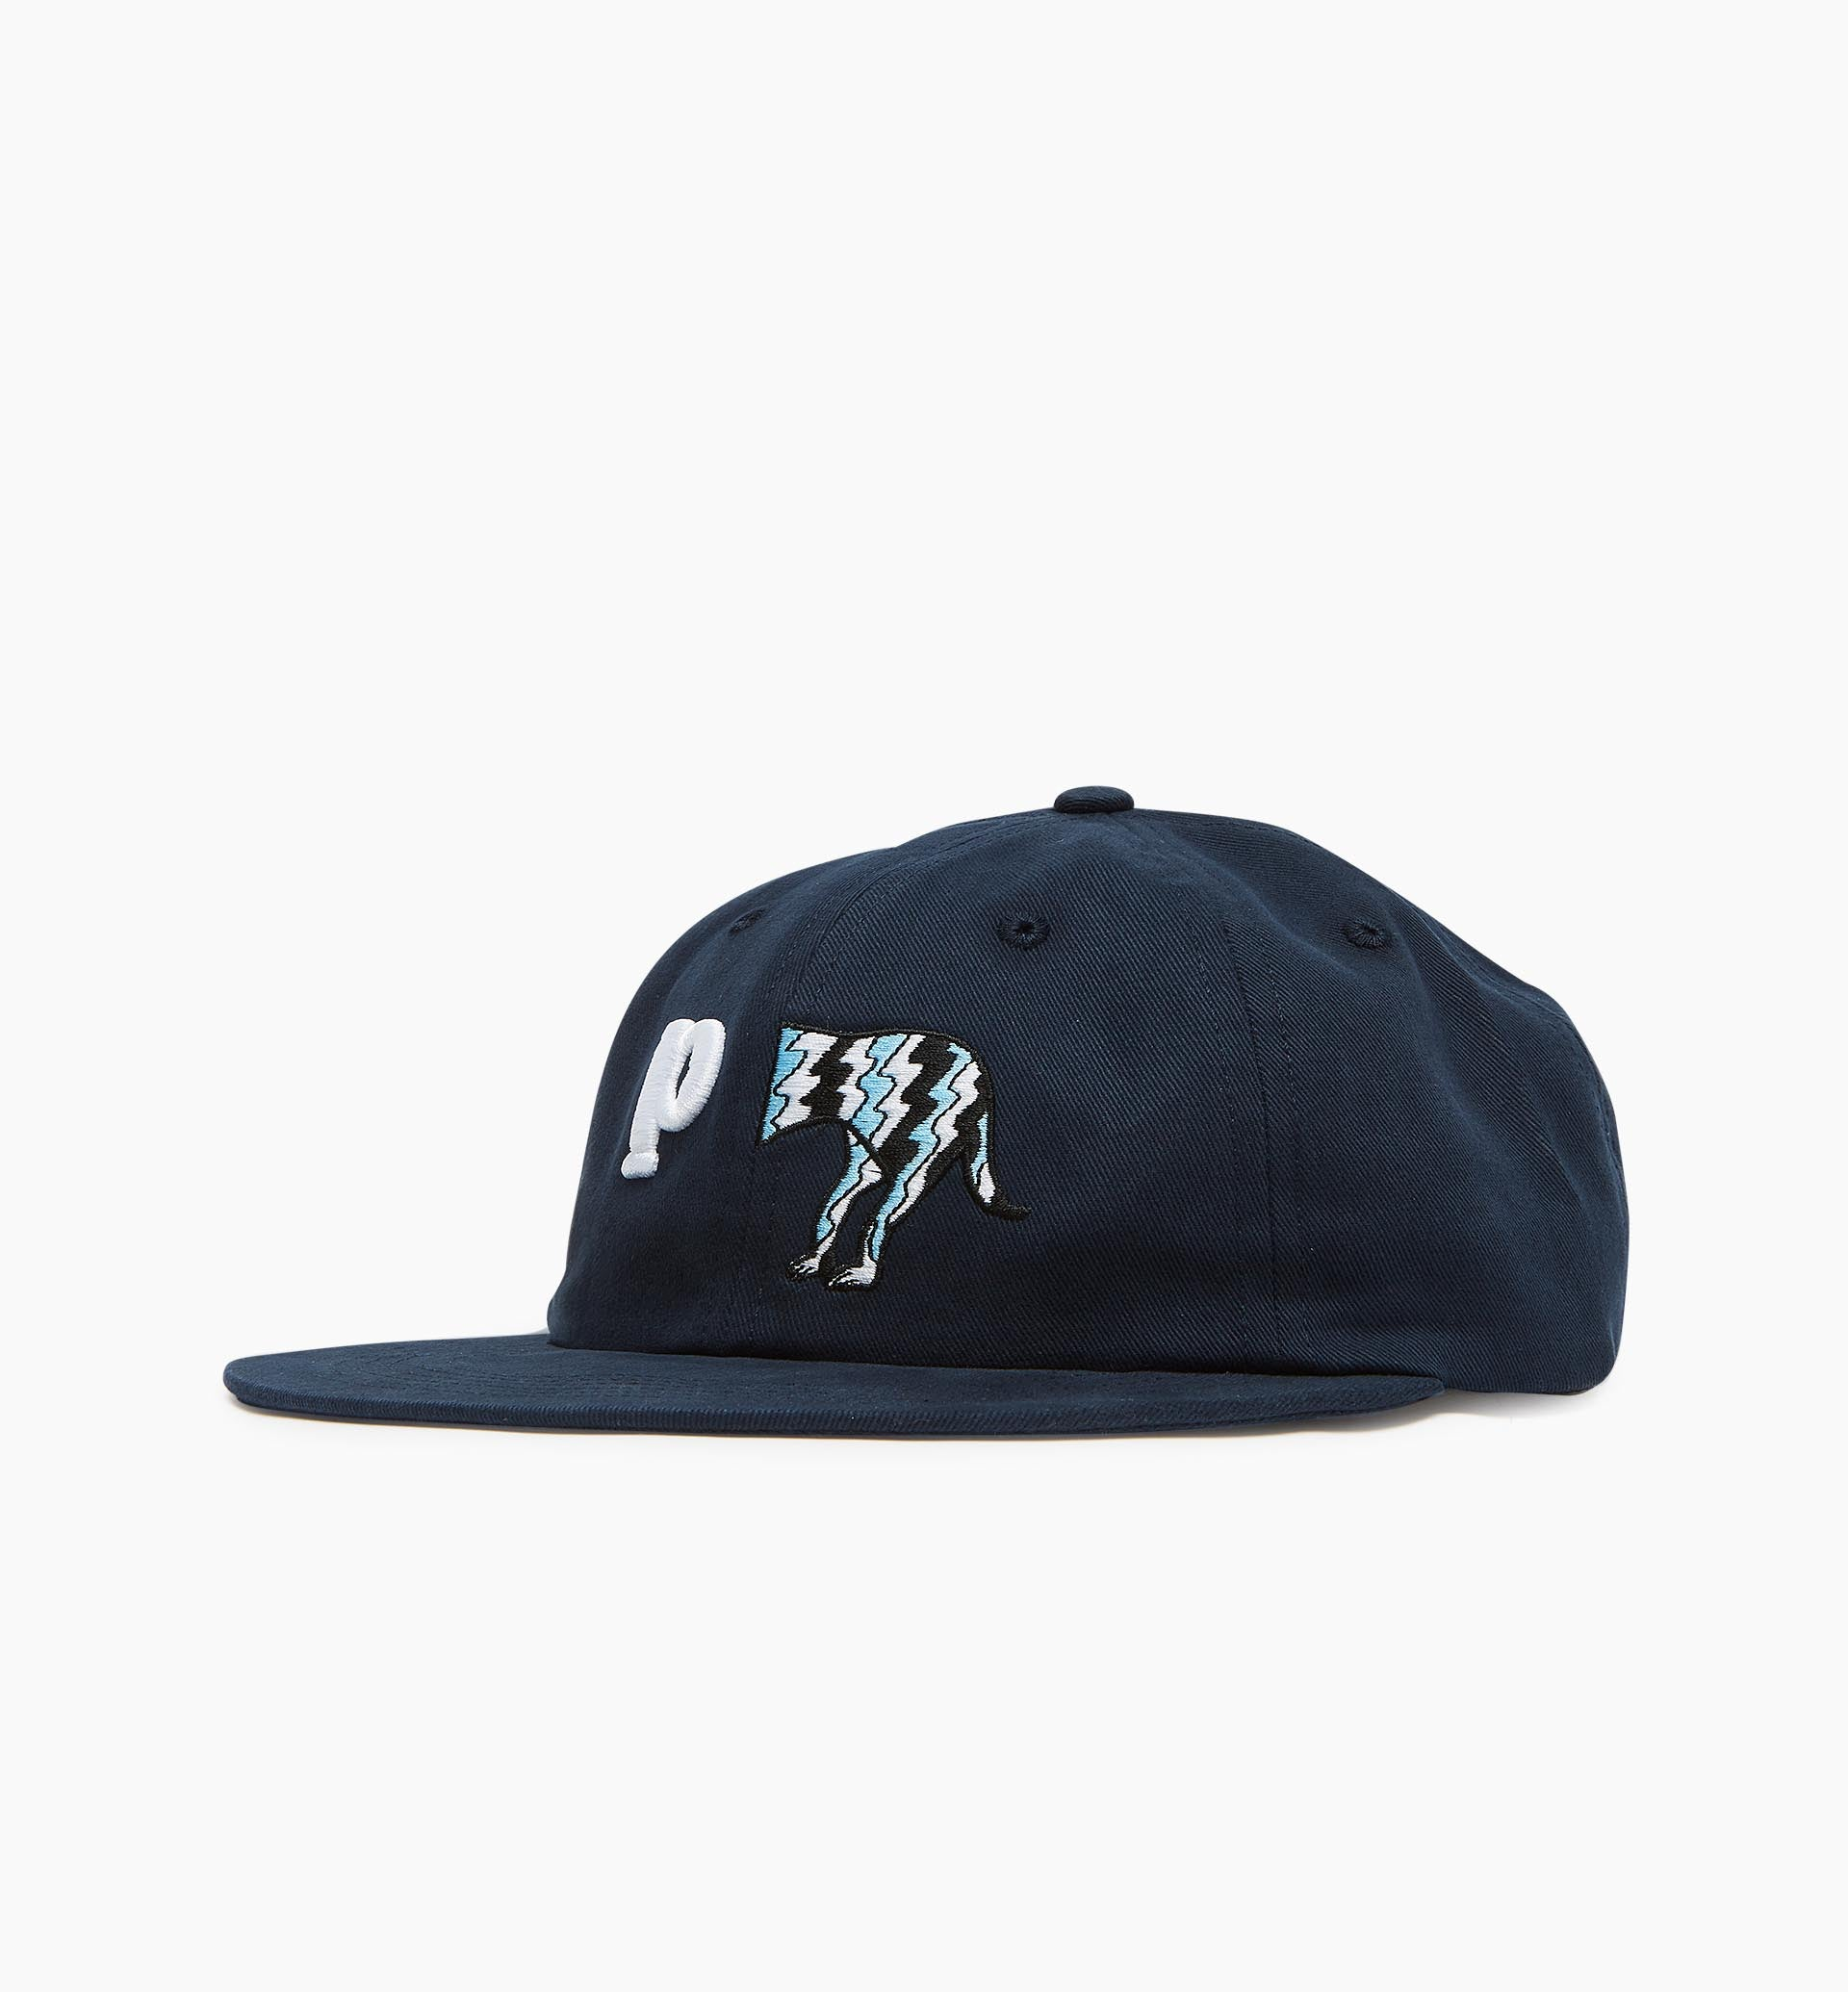 Parra - dog tail P 6 panel hat